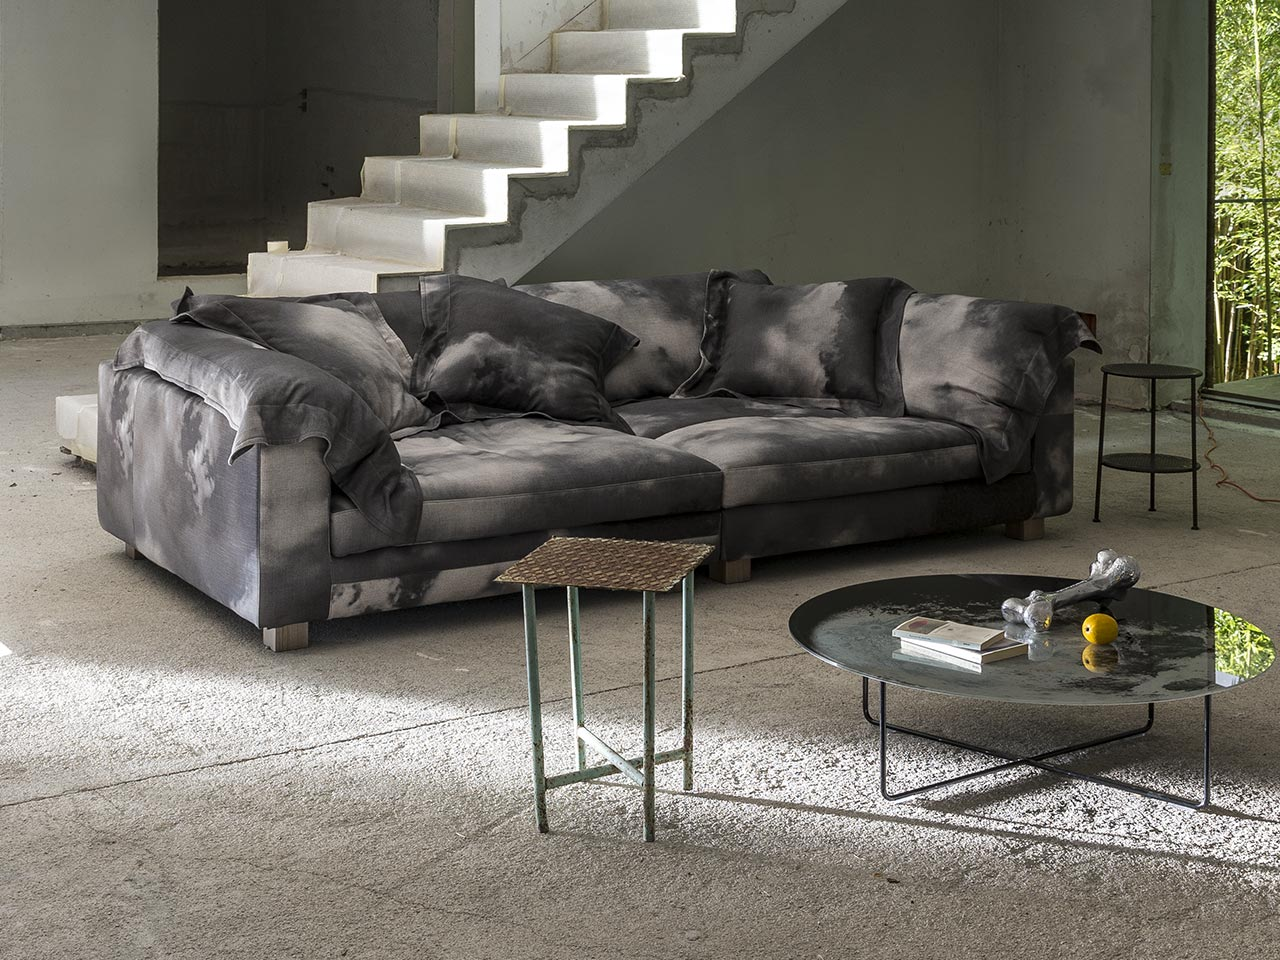 FURNITURE MOROSO DIESEL